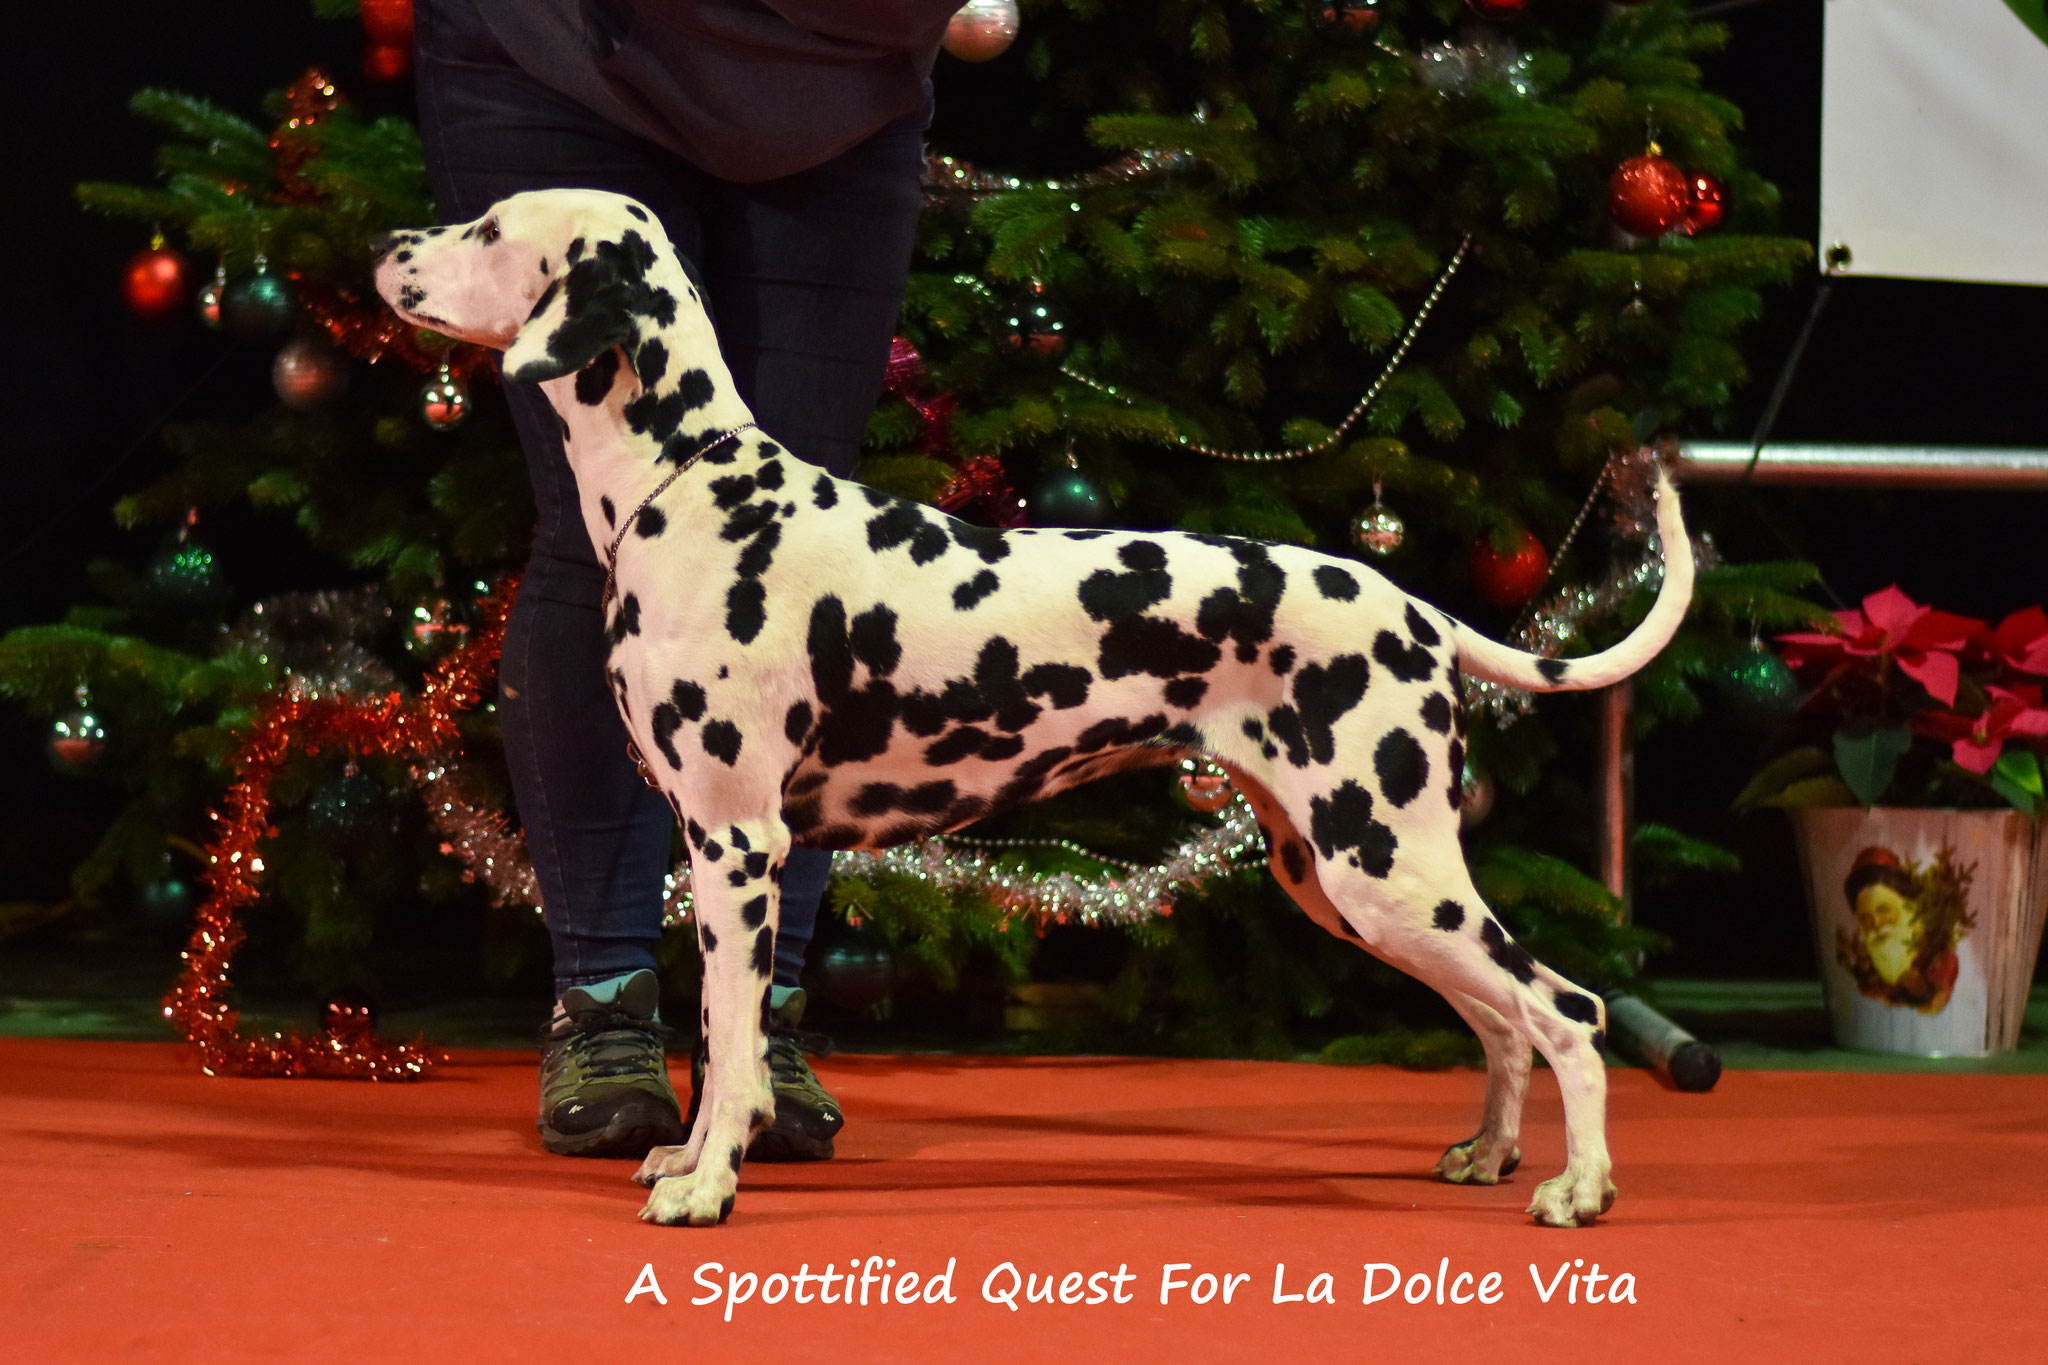 A Spottified Quest For La Dolce Vita, 16 months, Landen Christmas show 2018